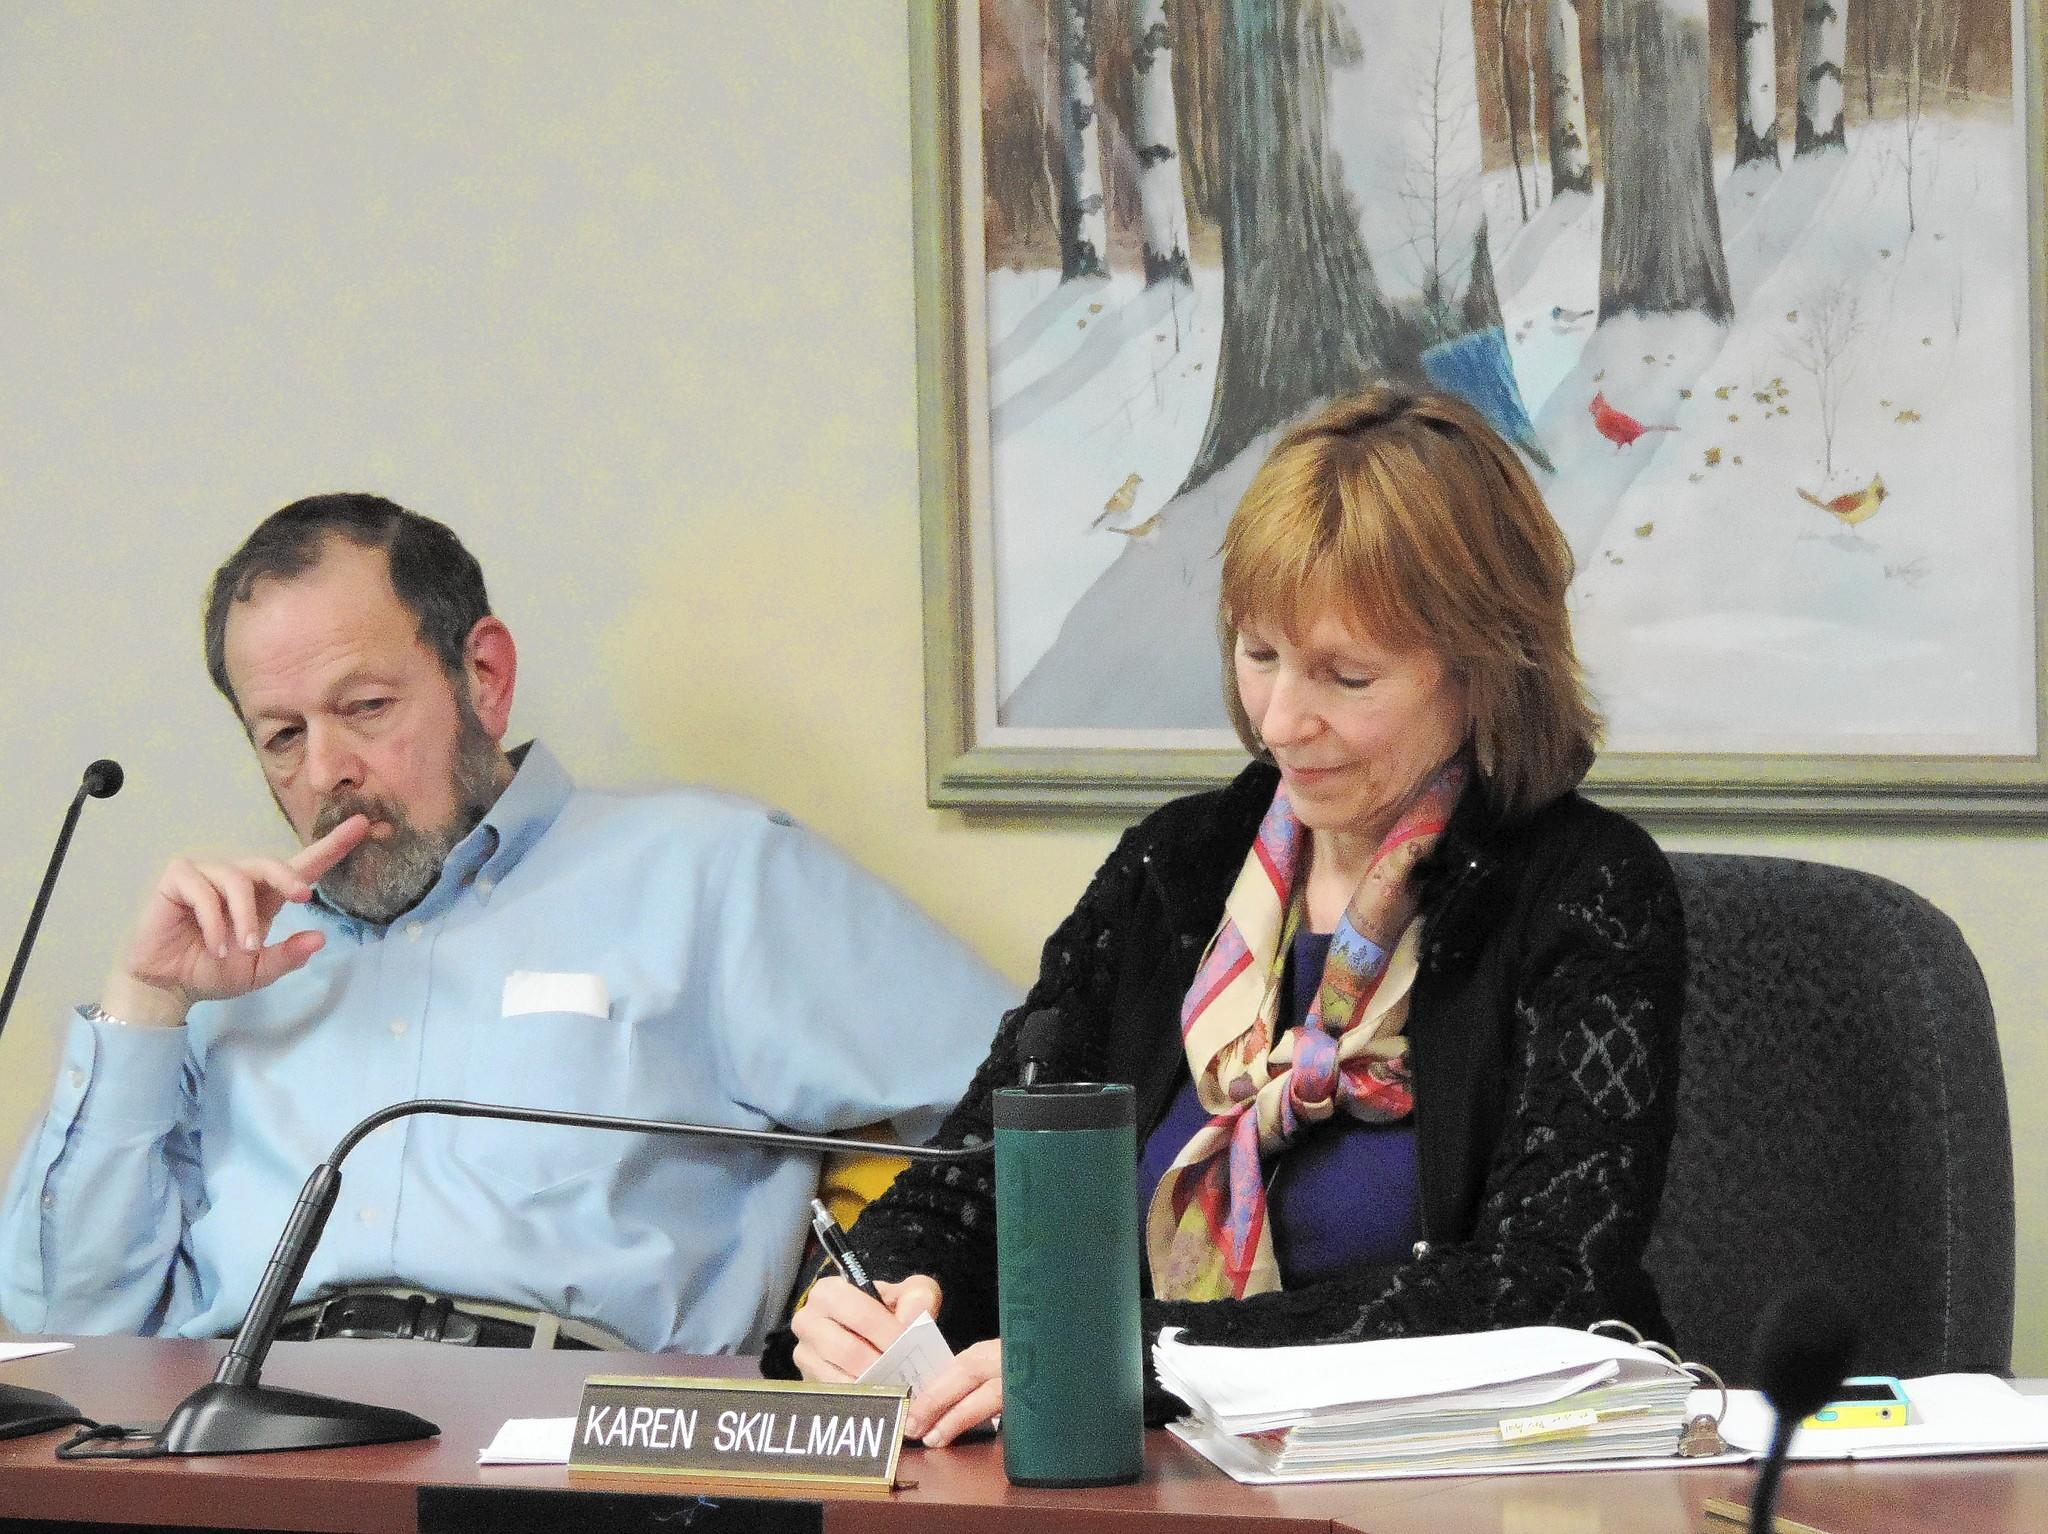 Plan Commission members Dennis Pines and Karen Skillman discuss a proposal for a shelter.